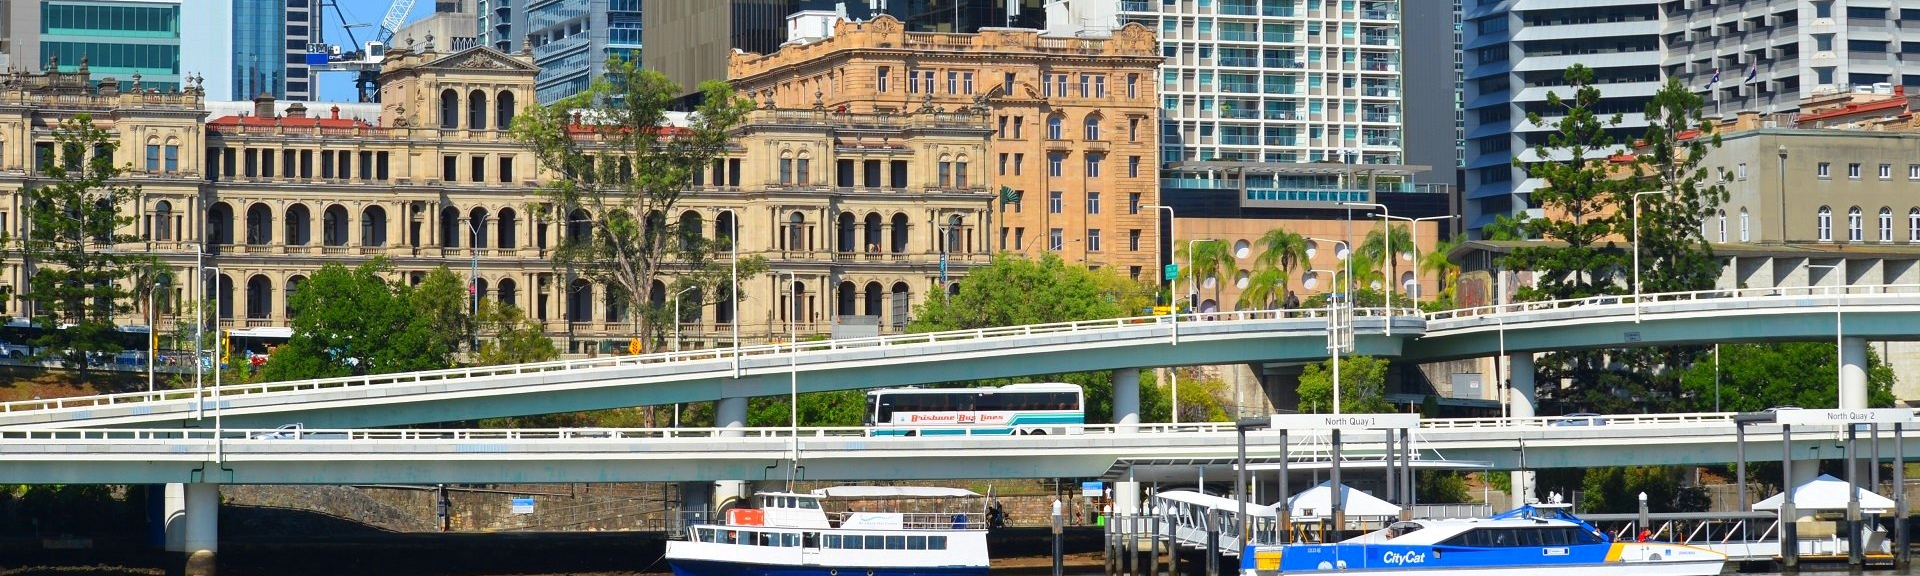 Image showing freeways crossing the Brisbane River Qld with offices in the background.